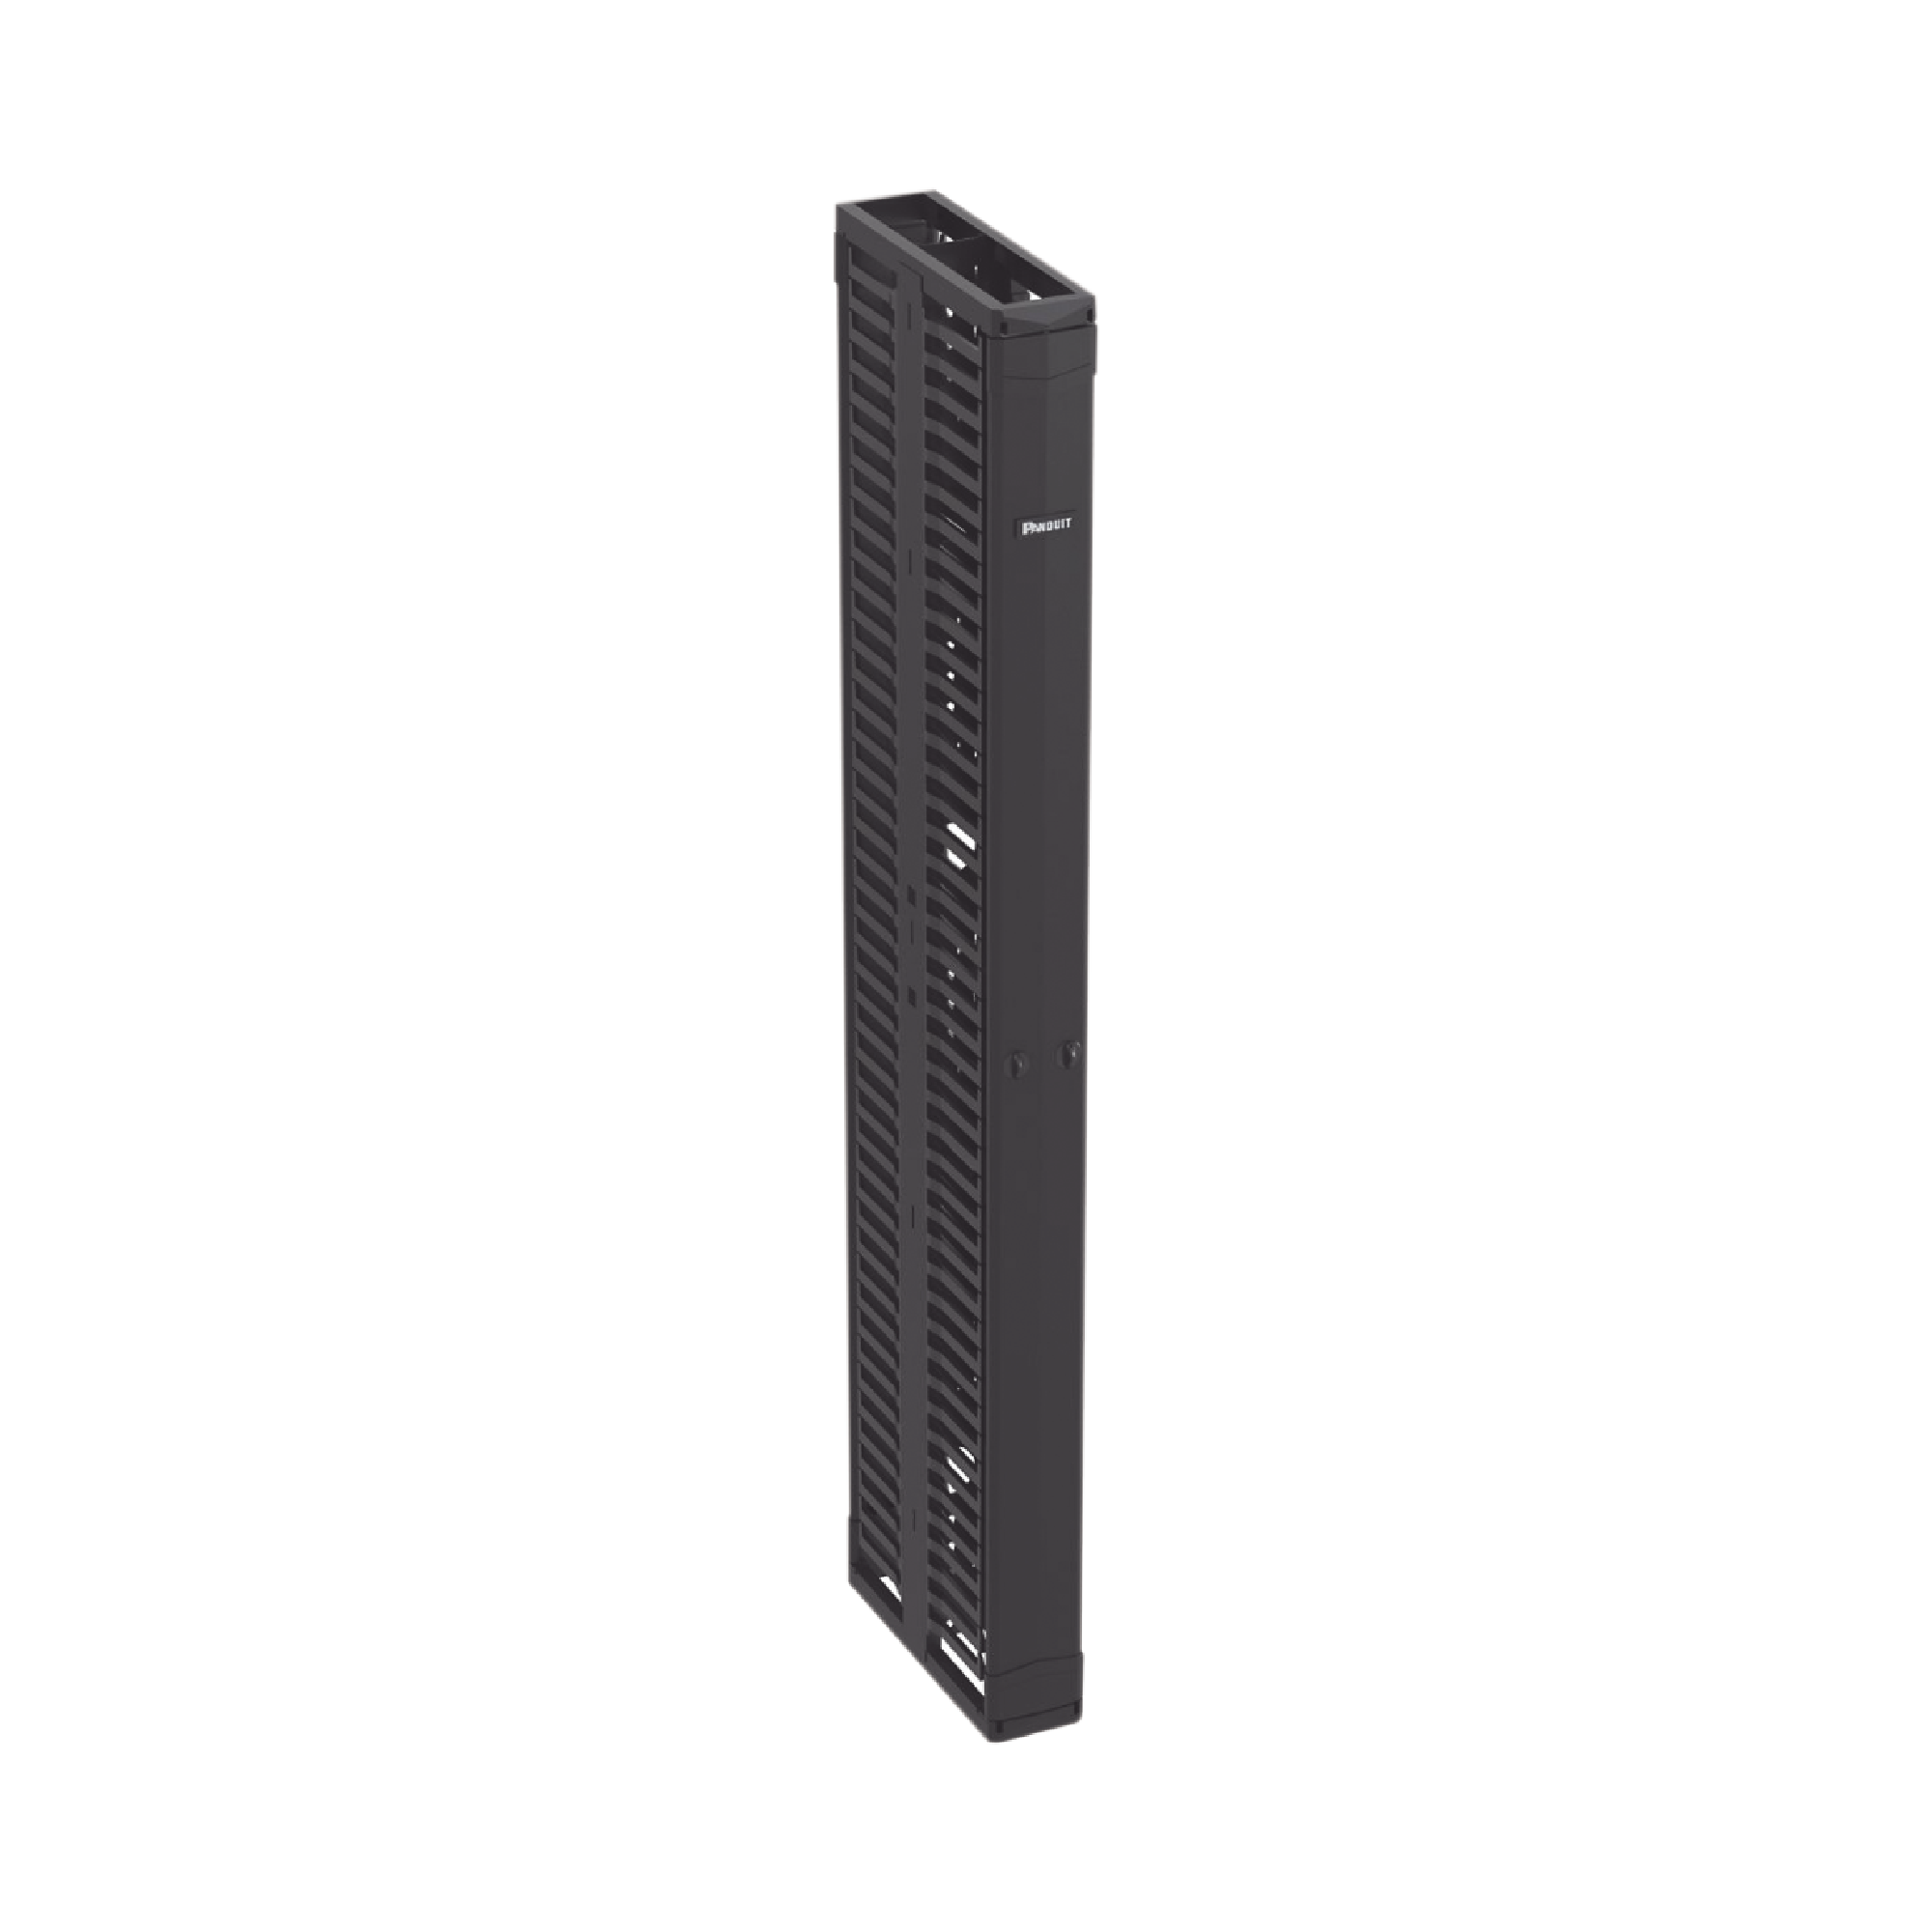 Organizador Vertical Doble PatchRunner, Para Rack Abierto de 45 Unidades, 152.4 mm de Ancho, Color Negro